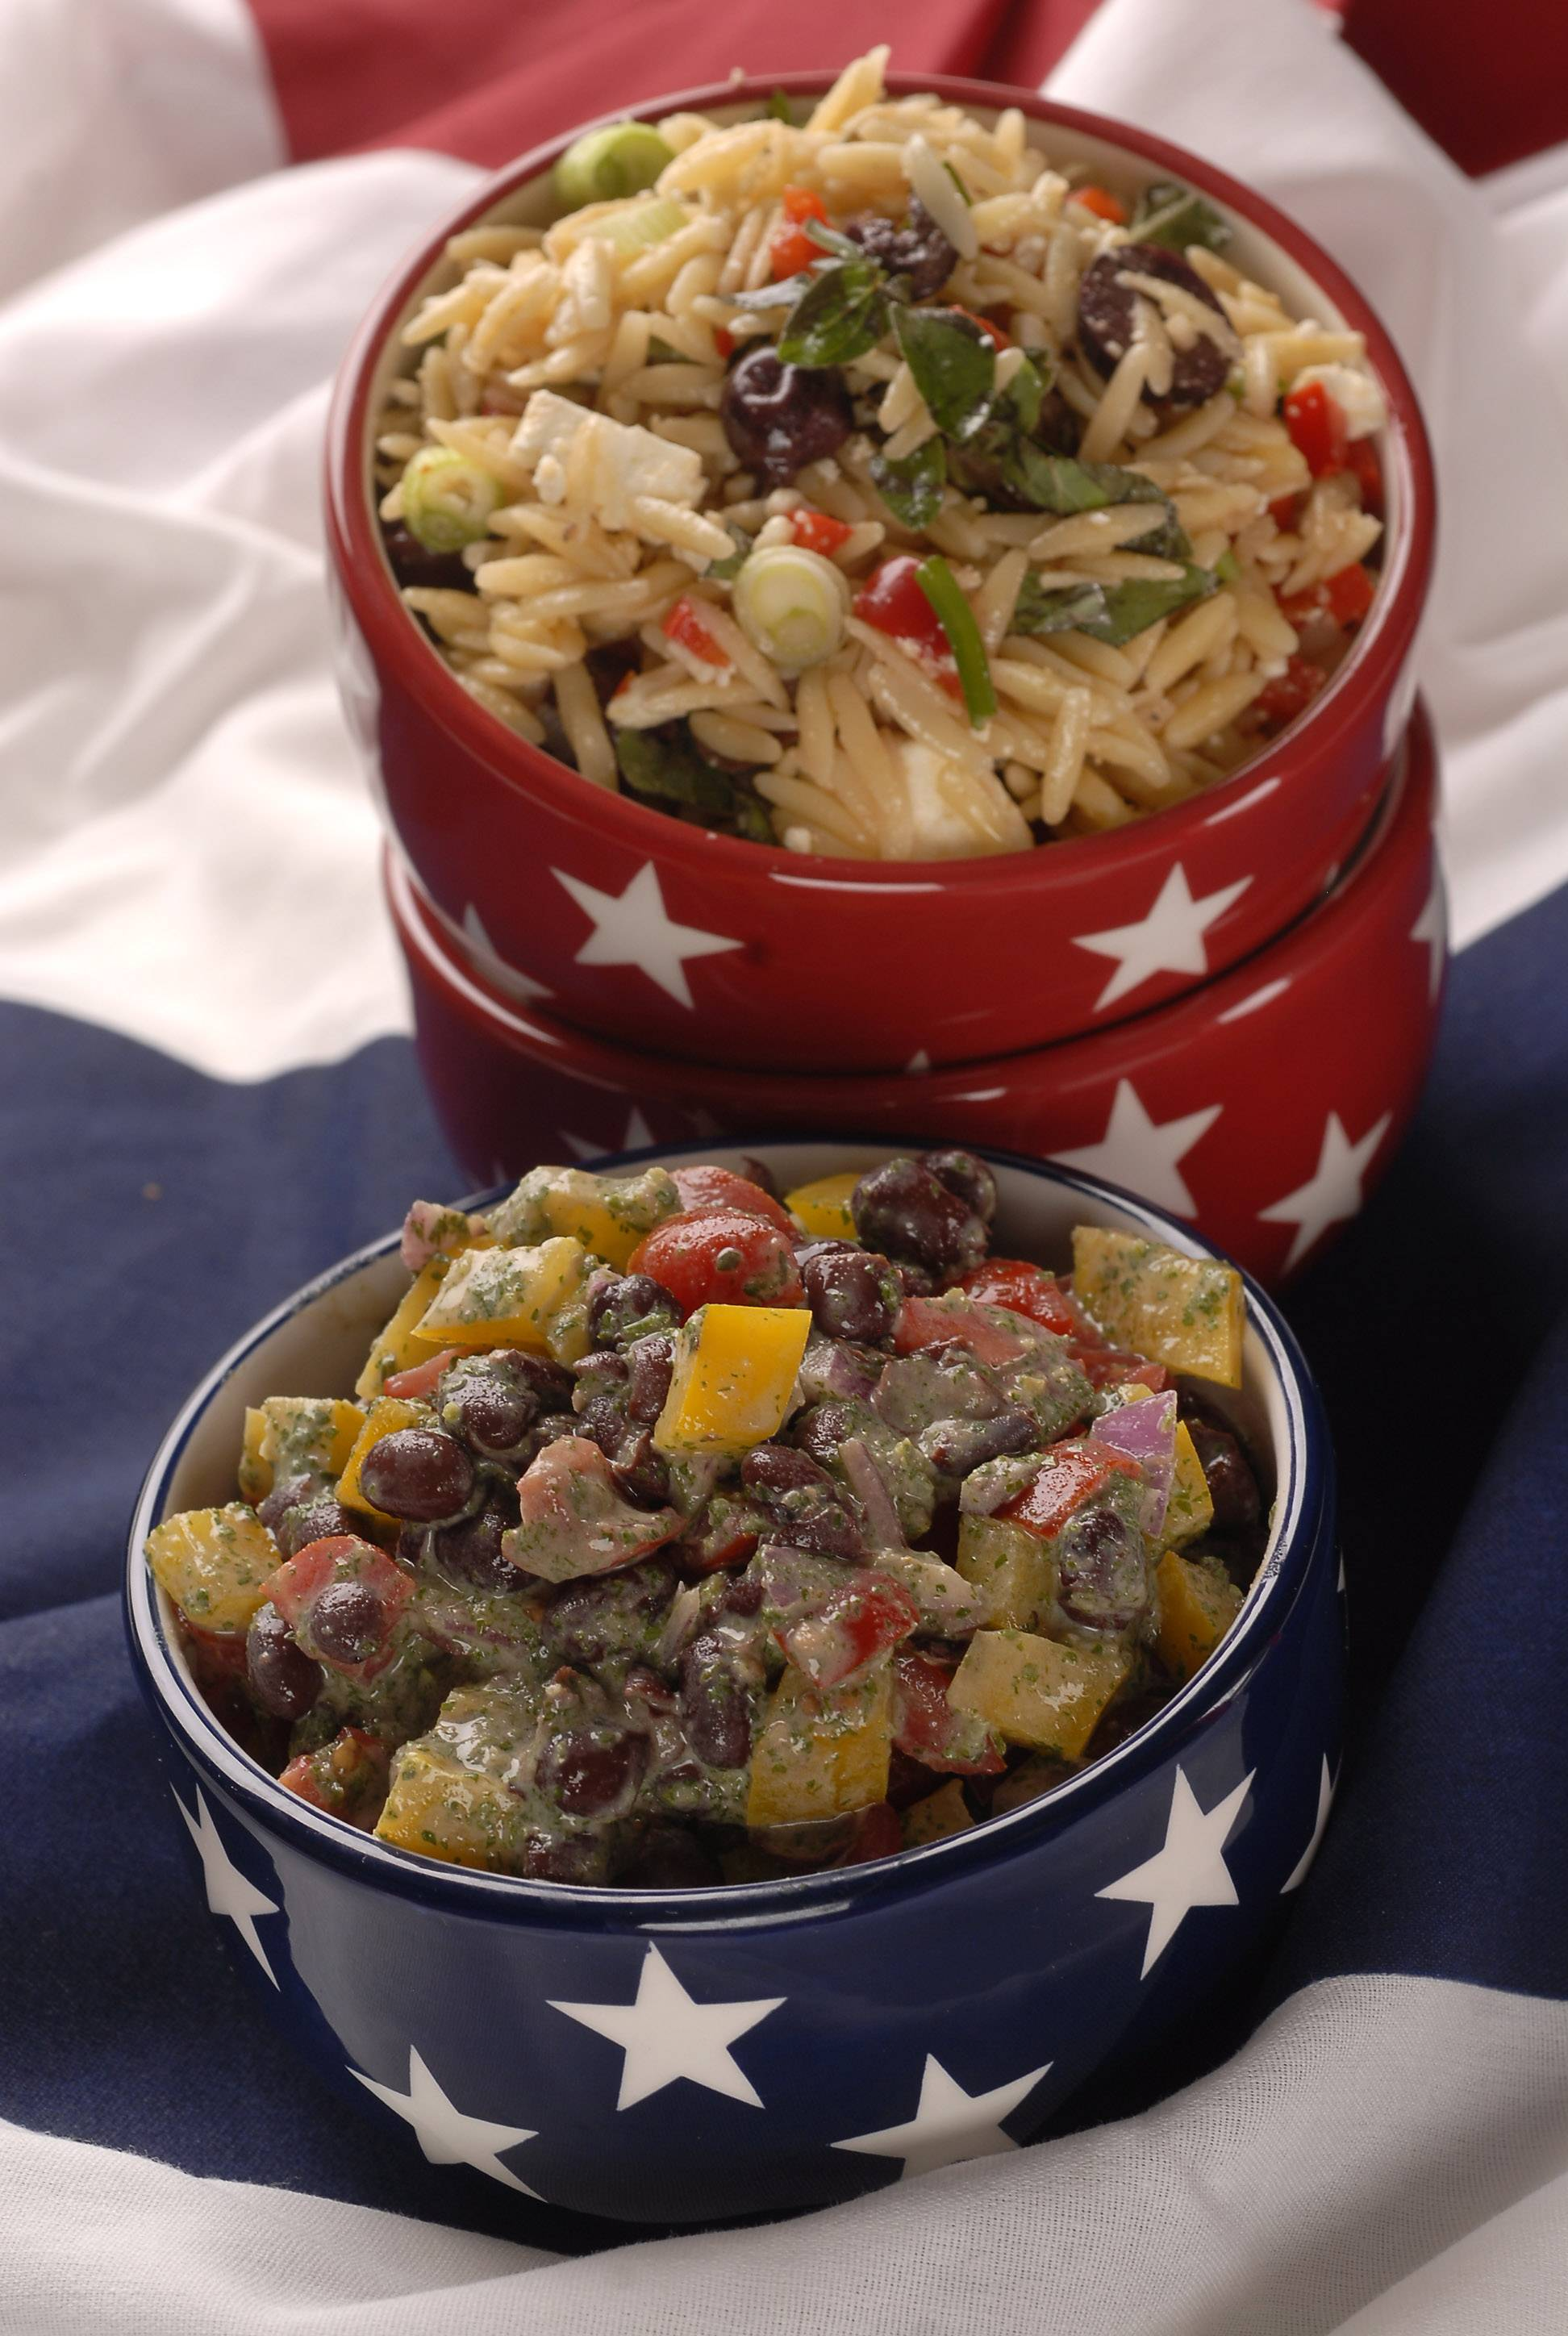 Grecian Orzo Salad is one of Deborah Pankey's favorite summer side dishes. Share your favorite summer side with her and it could be featured in an upcoming Food section.